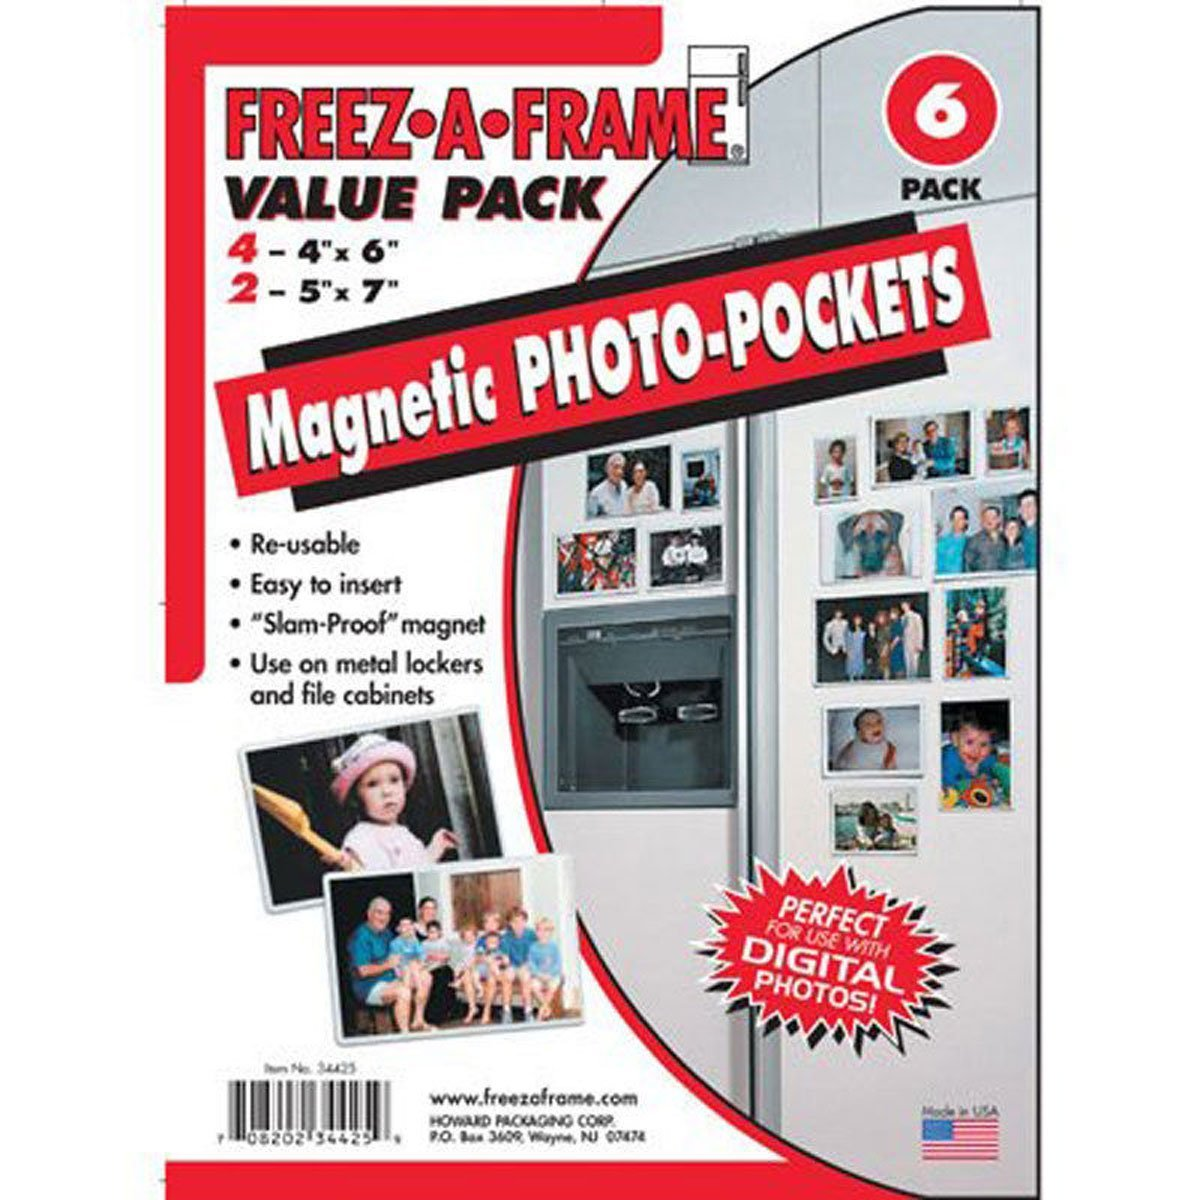 Clear Magnetic Photo Frame Pockets, Freez-A-Frame for Refrigerator, 4 frames (4